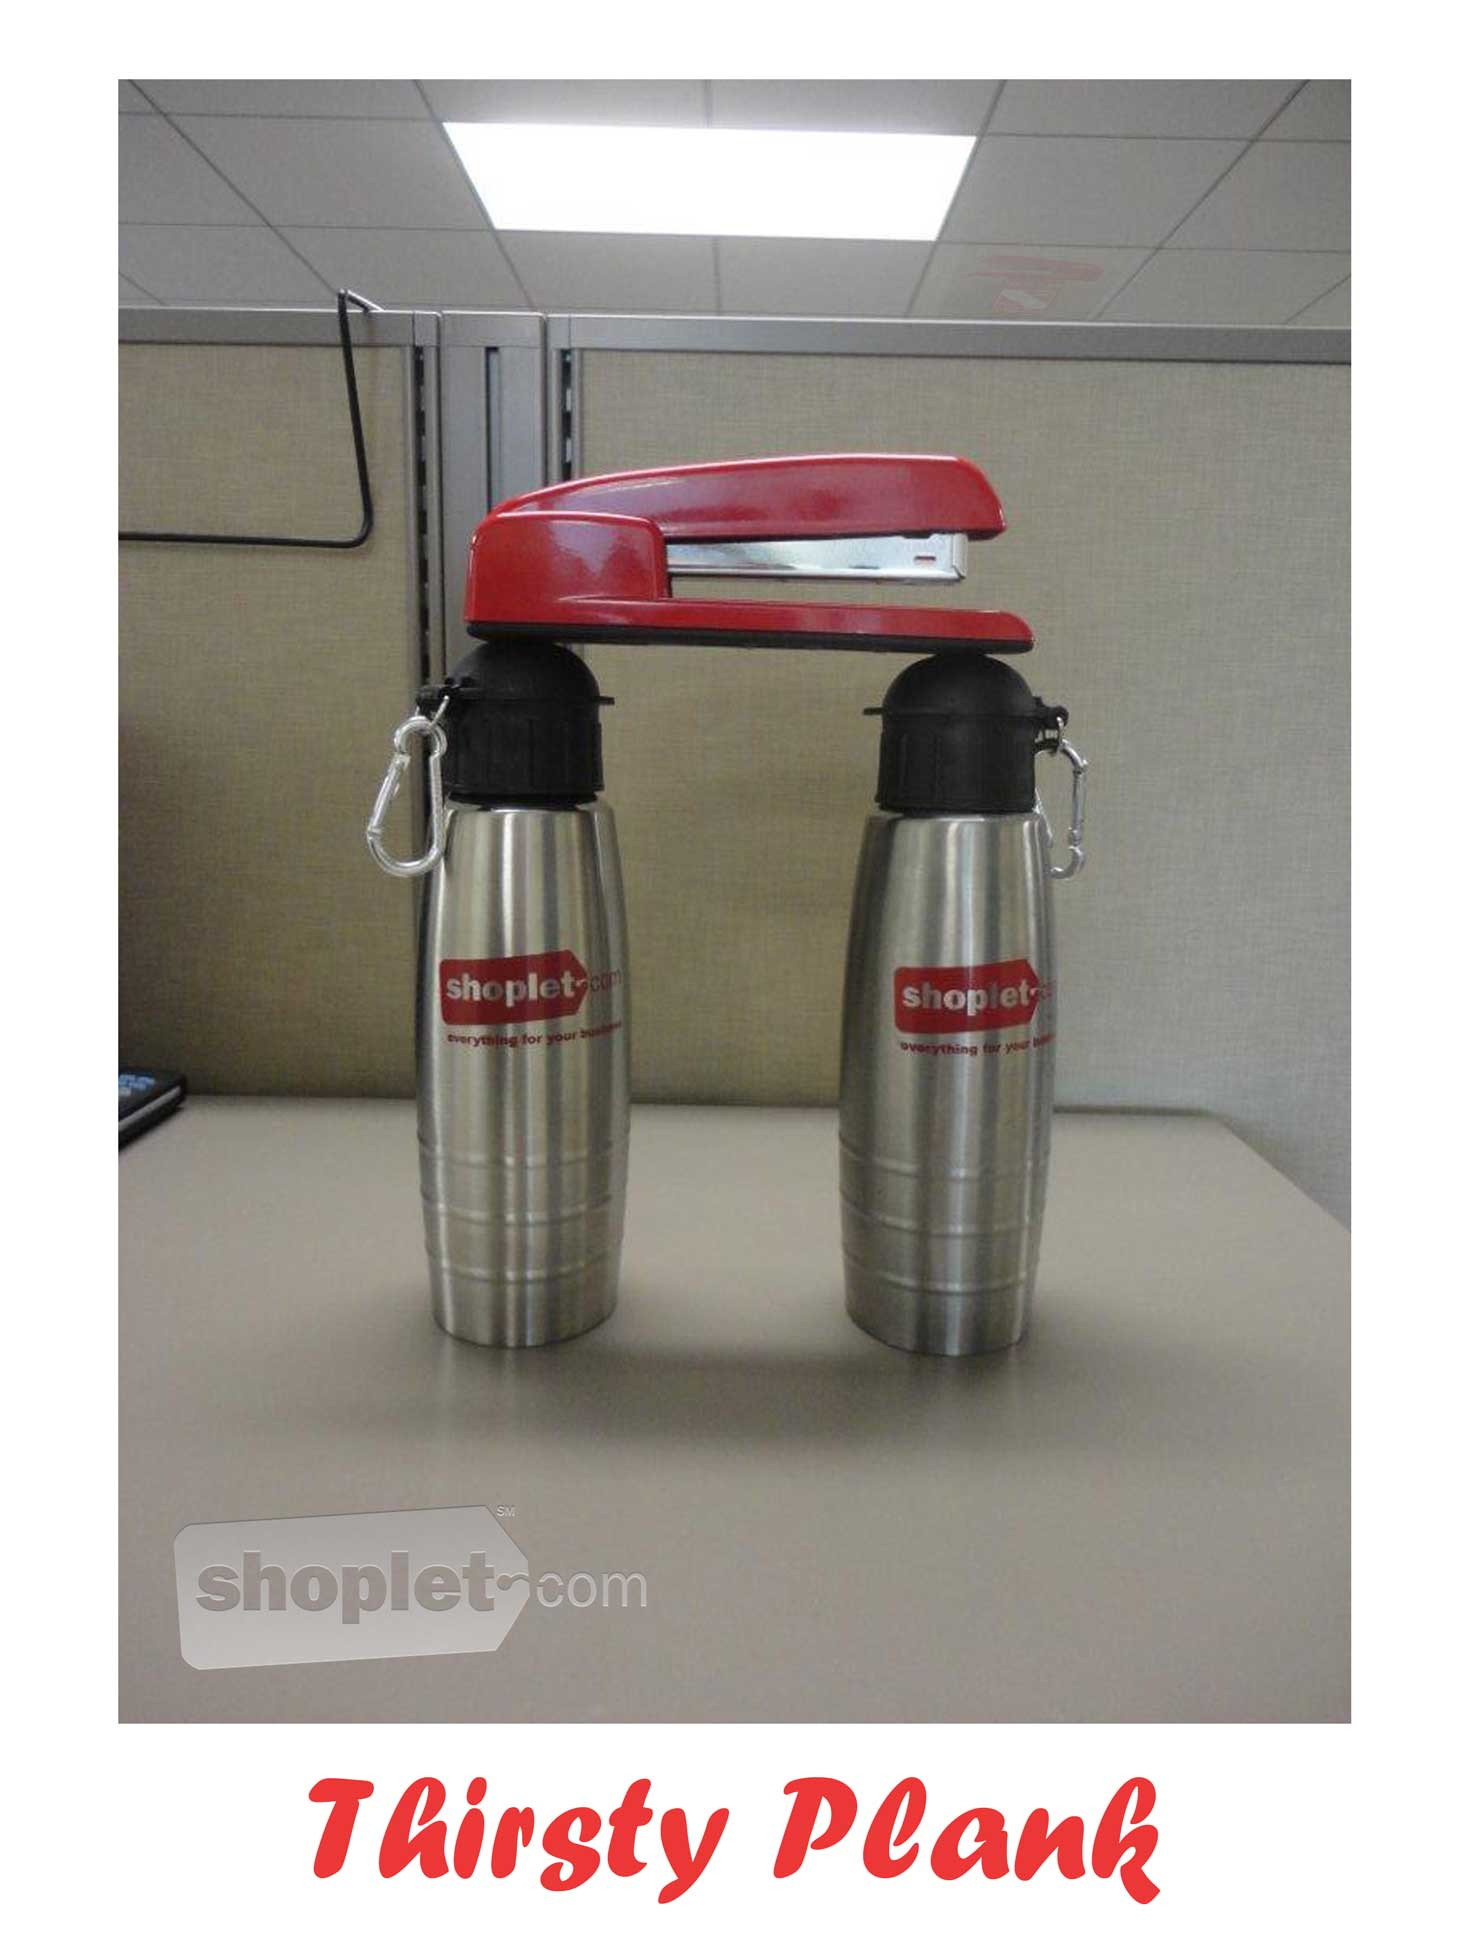 Shoplet Planking Stapler Water Bottles Shoplet Planking Stapler Planks Water Bottles